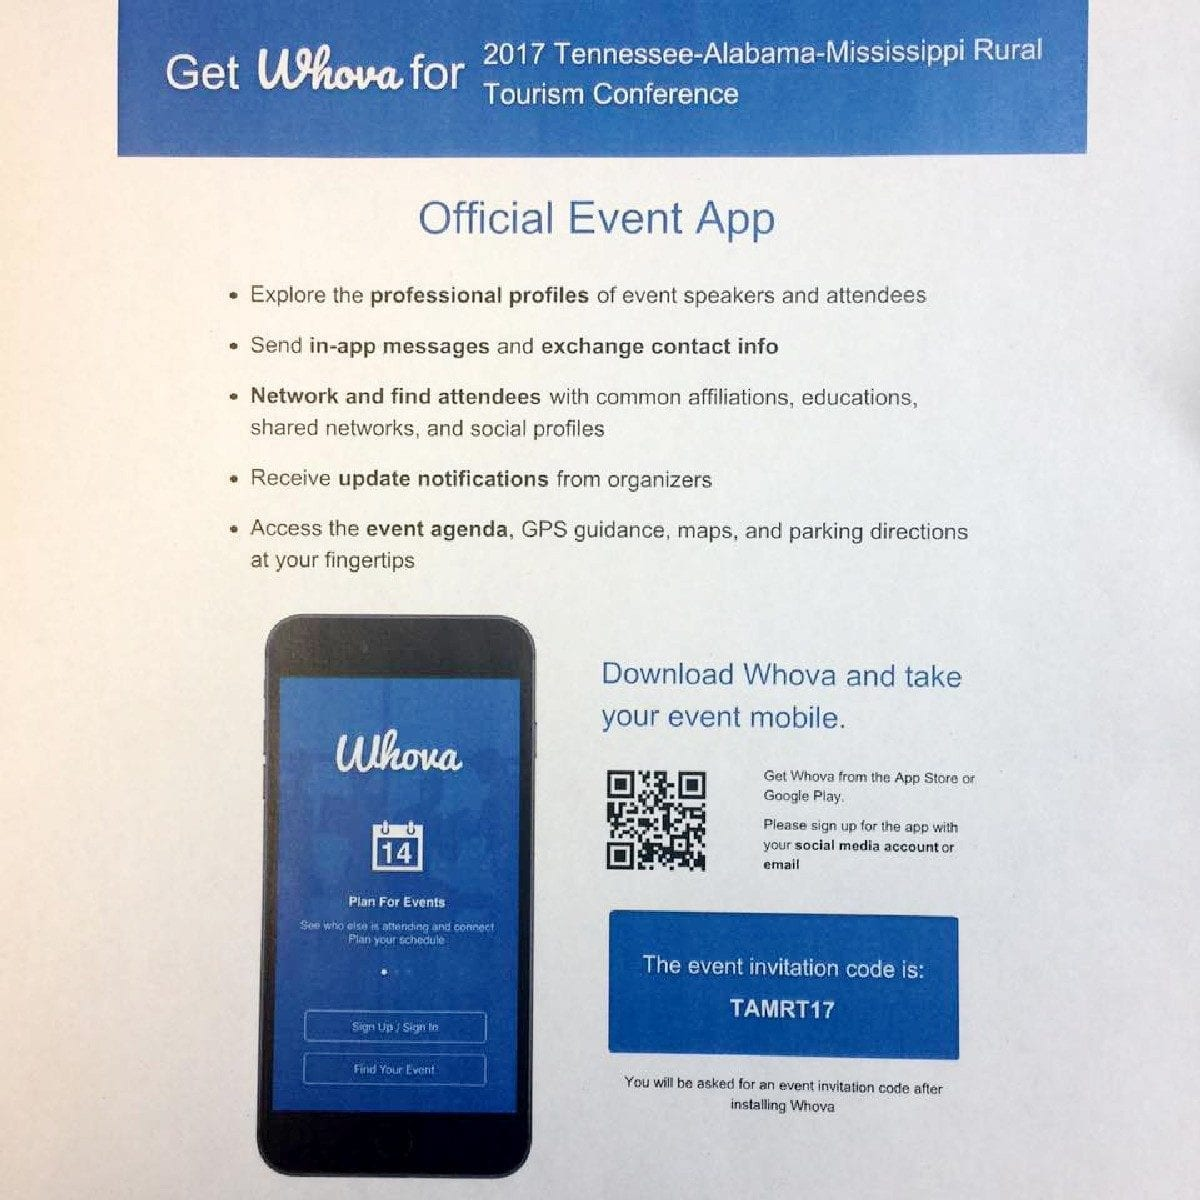 Handout highlighting official conference app supported by Whova.